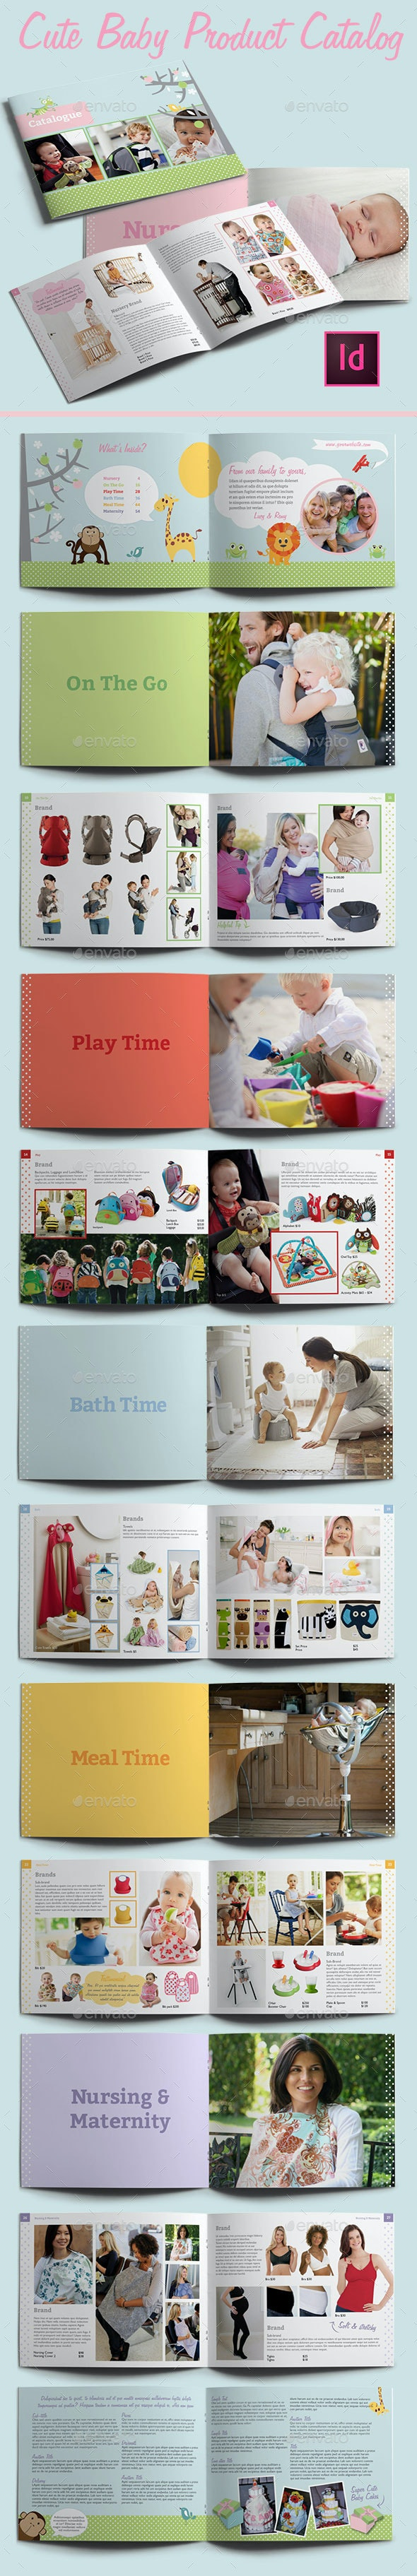 Cute Baby Product Catalog Indesign Template - Catalogs Brochures